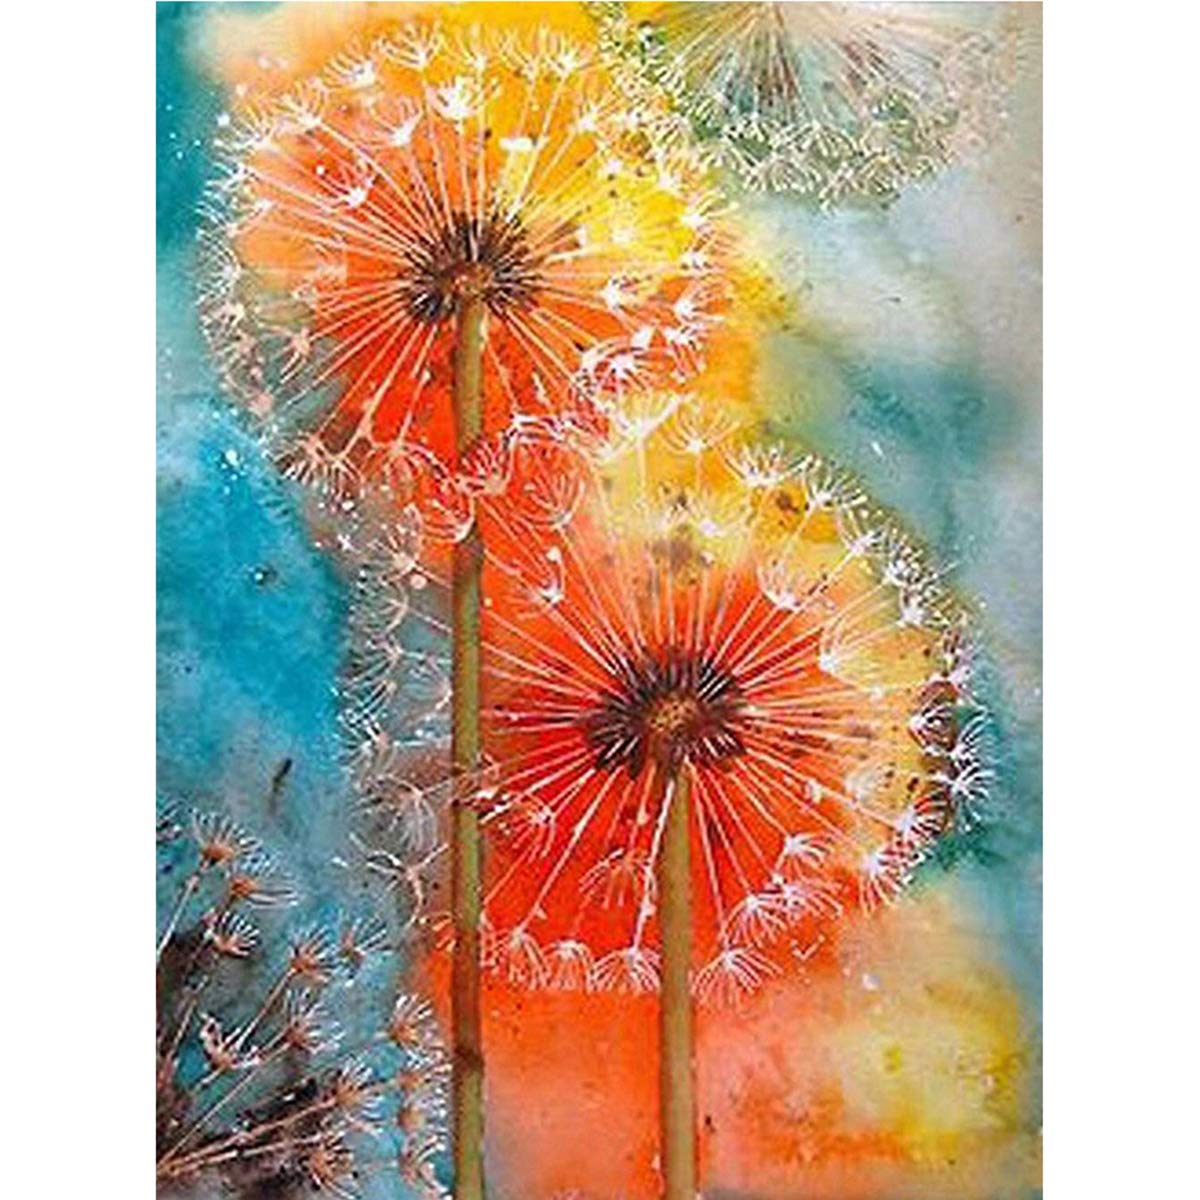 DIY 5D Full Diamond Painting Kit Square Diamonds Art Kit by Numbers Rhinestone Embroidery for Wall Decoration Dandelions 11.8X15.7inch